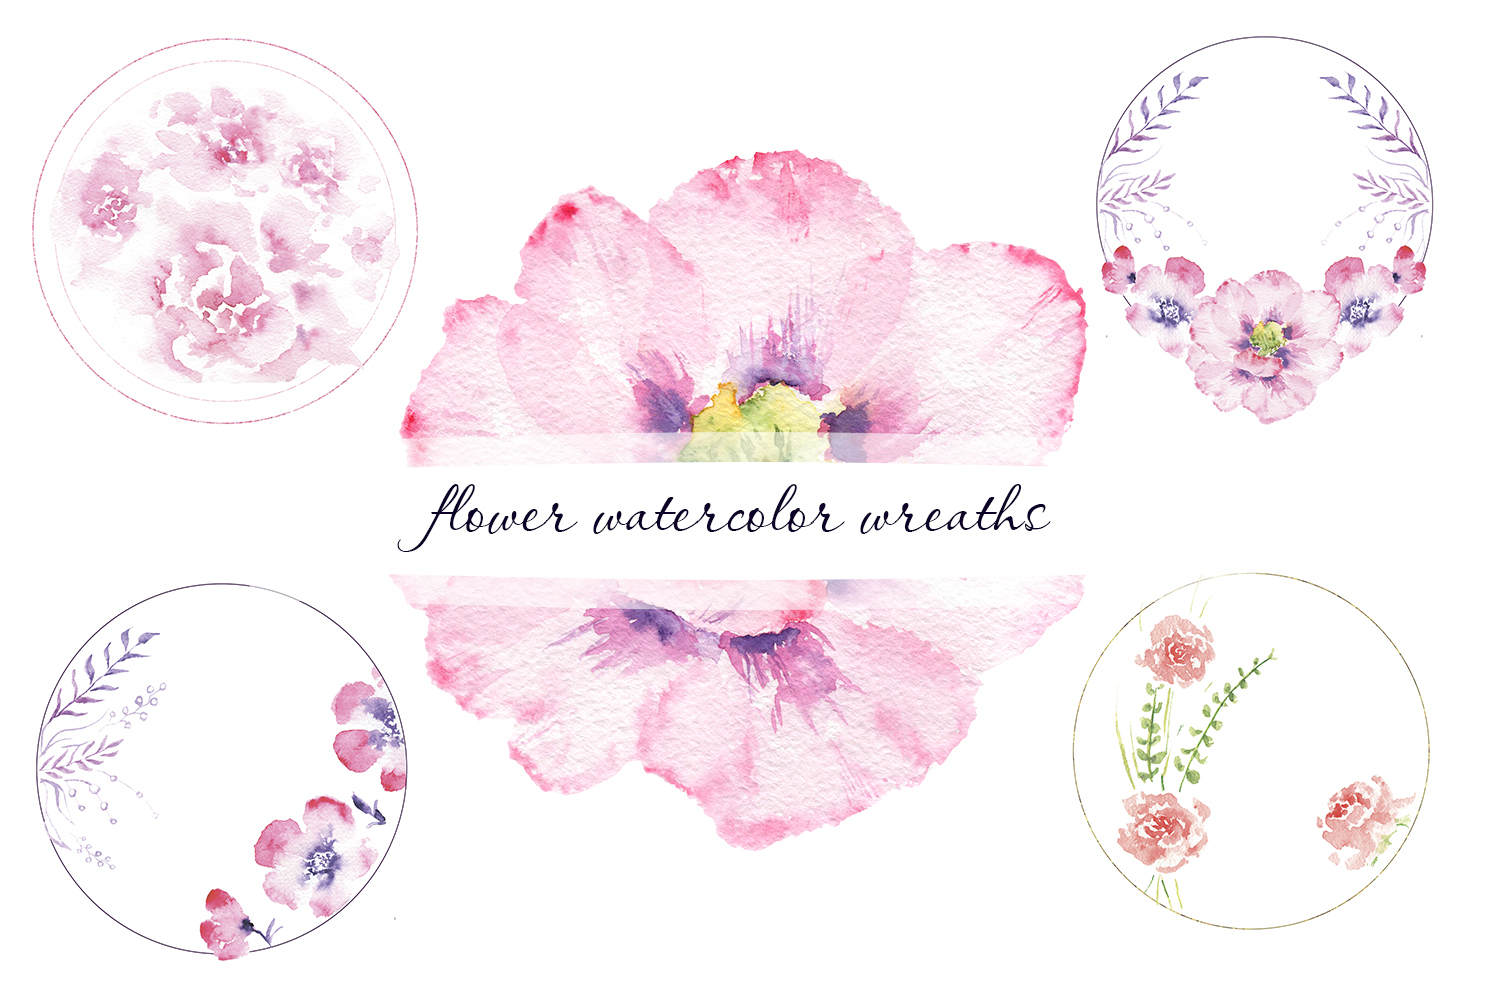 Spring mood in watercolor flowers example image 3